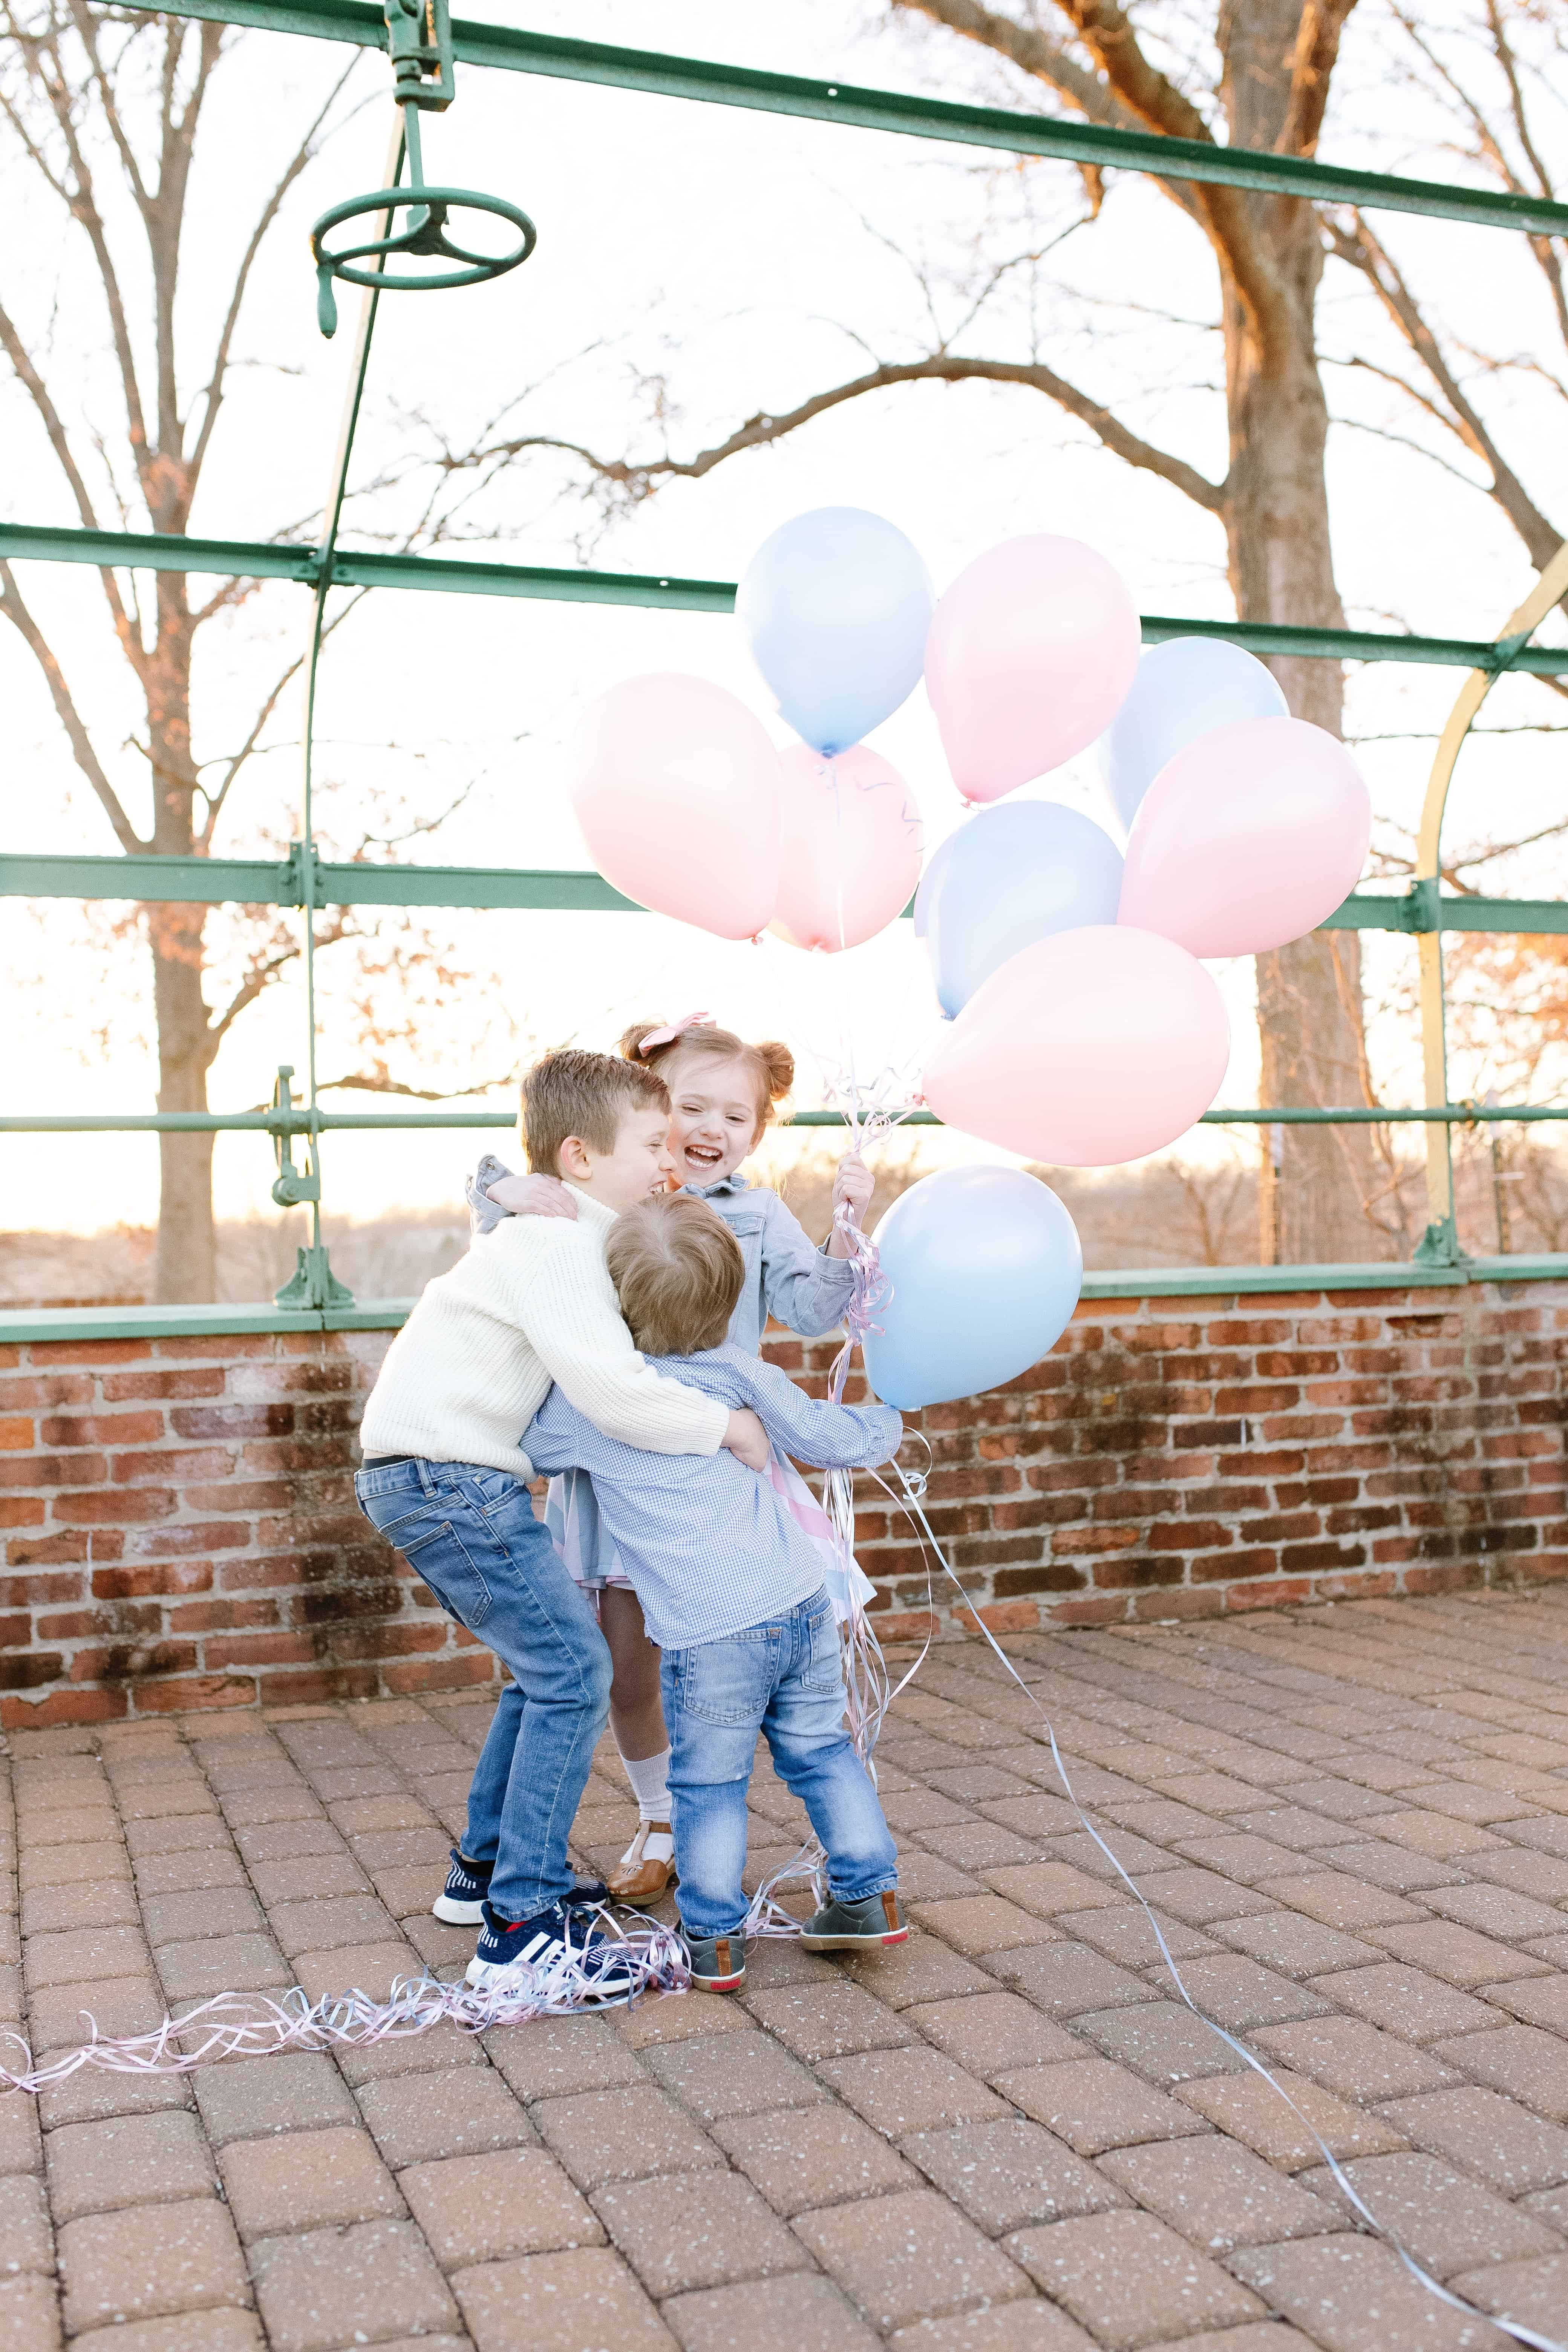 Siblings hugging with pink and blue balloons